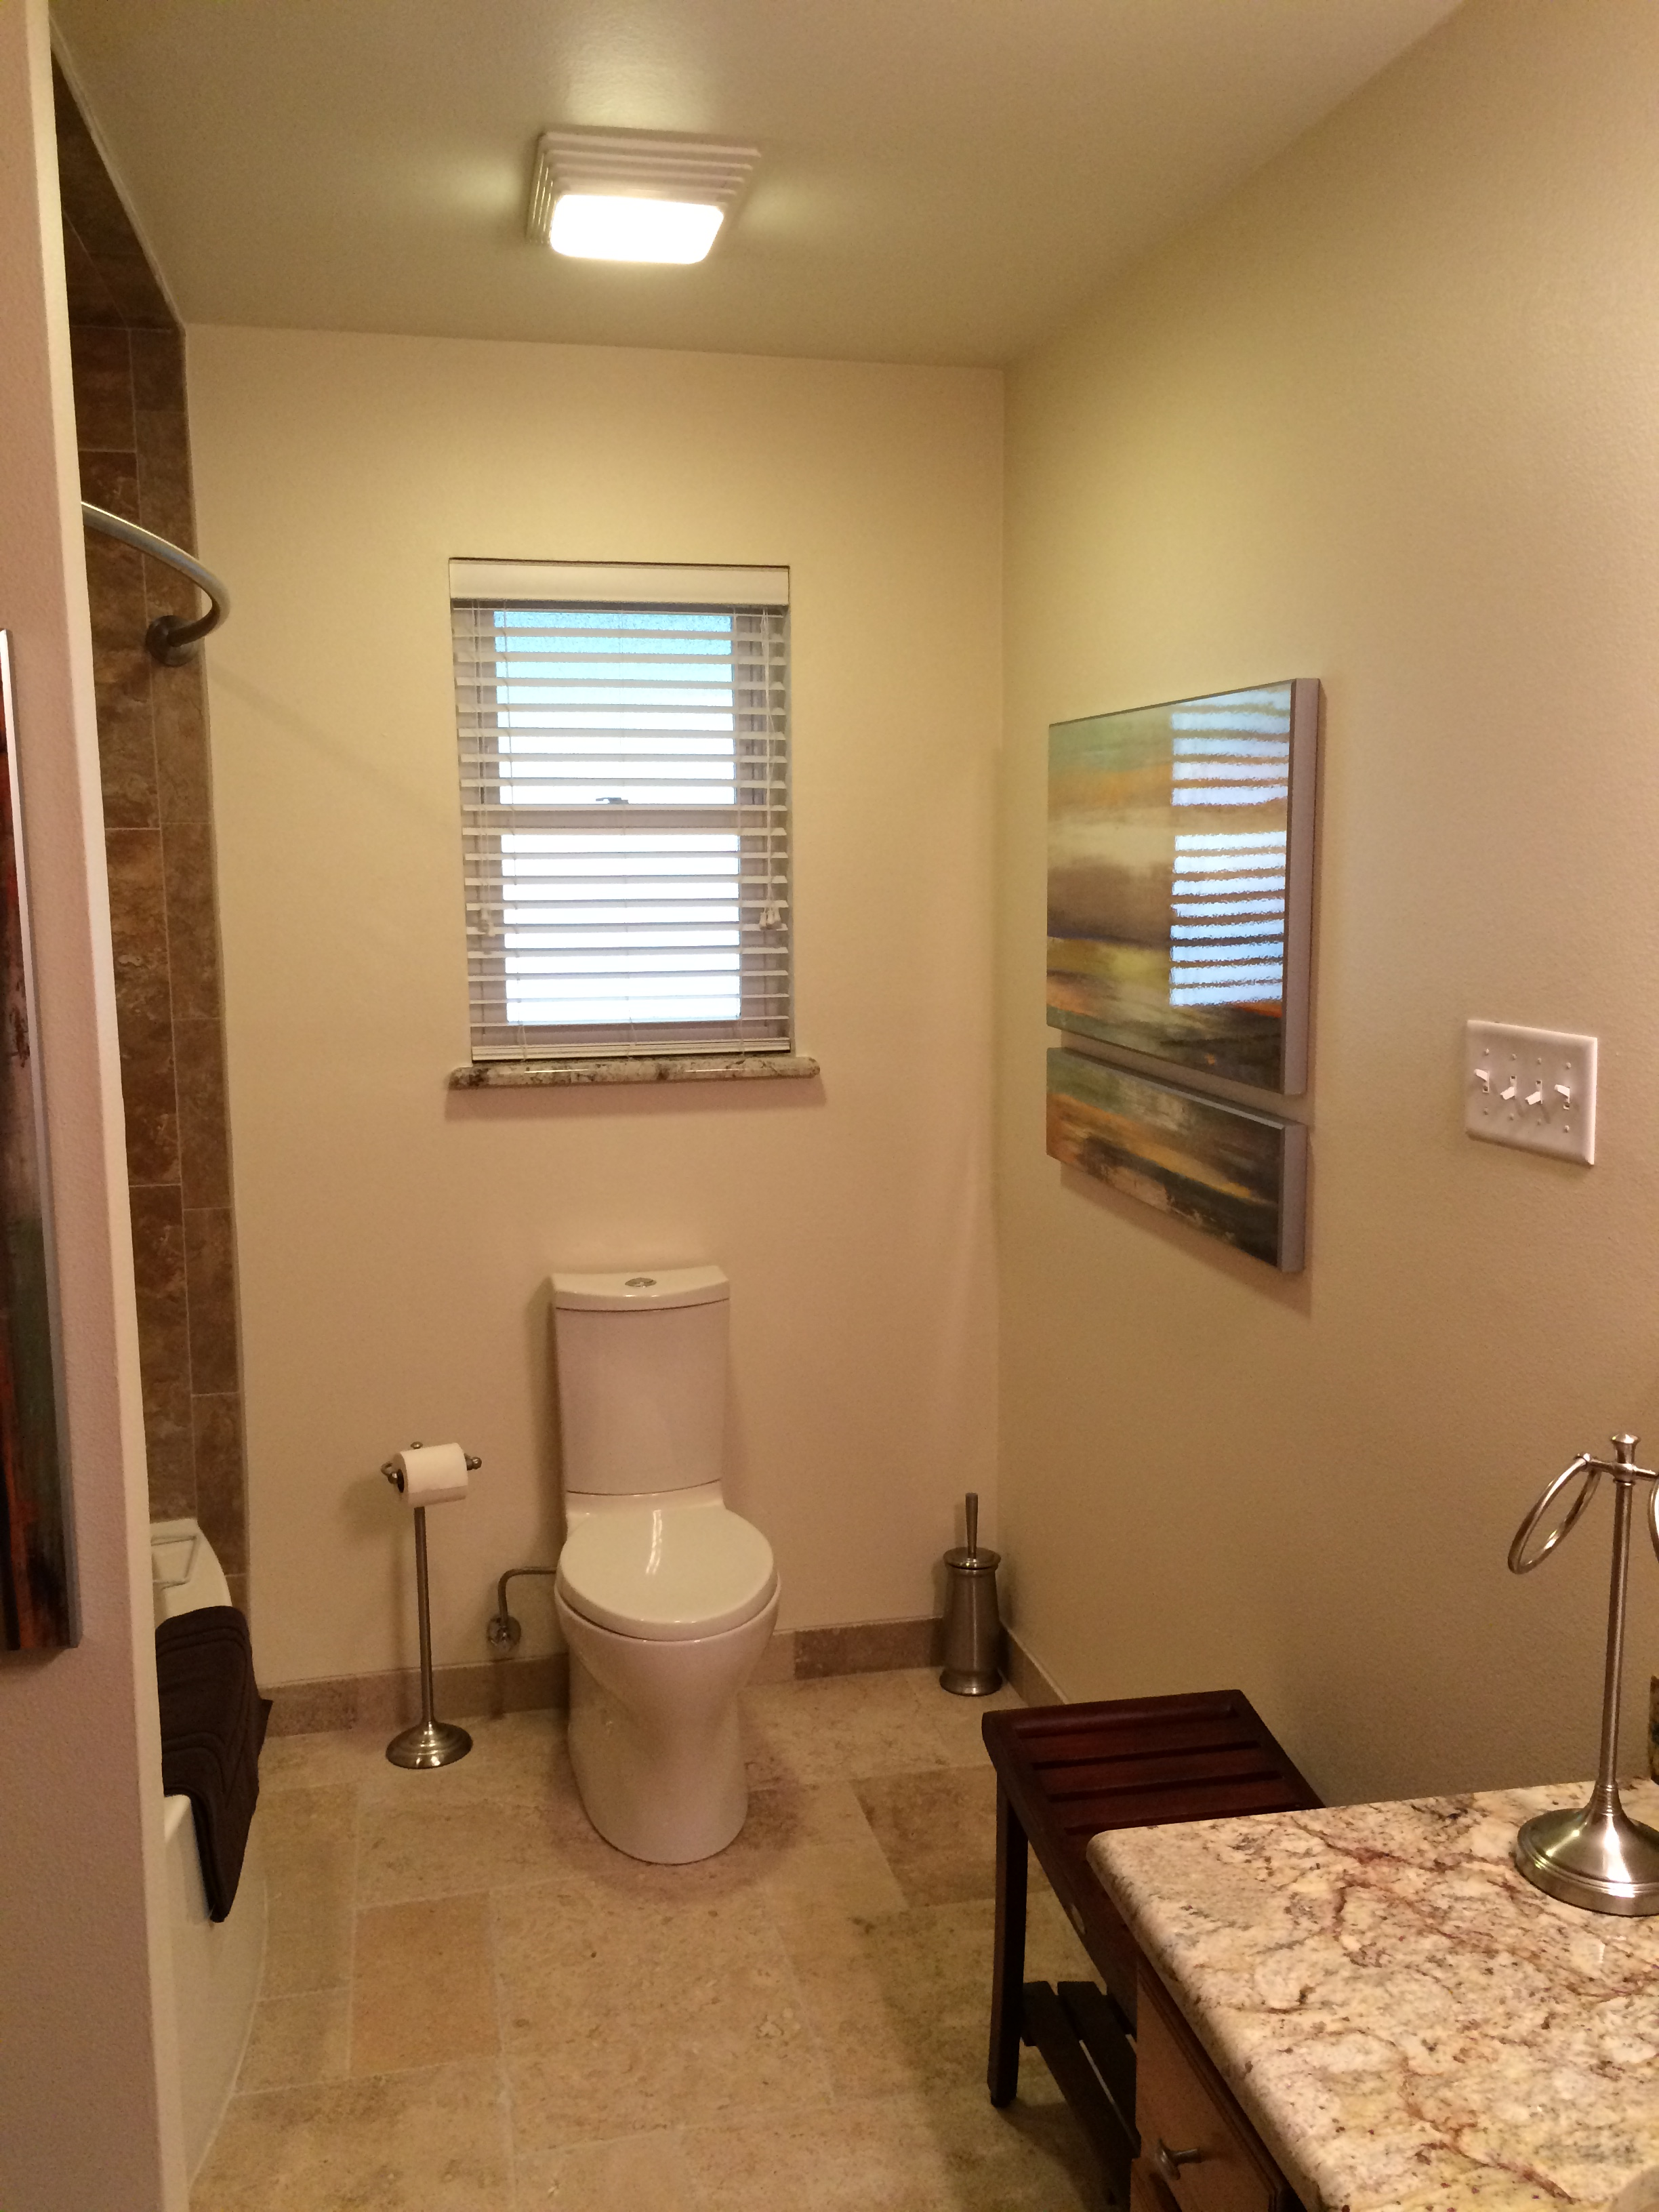 Bathroom Remodeling Baton Rouge La Zitro Construction